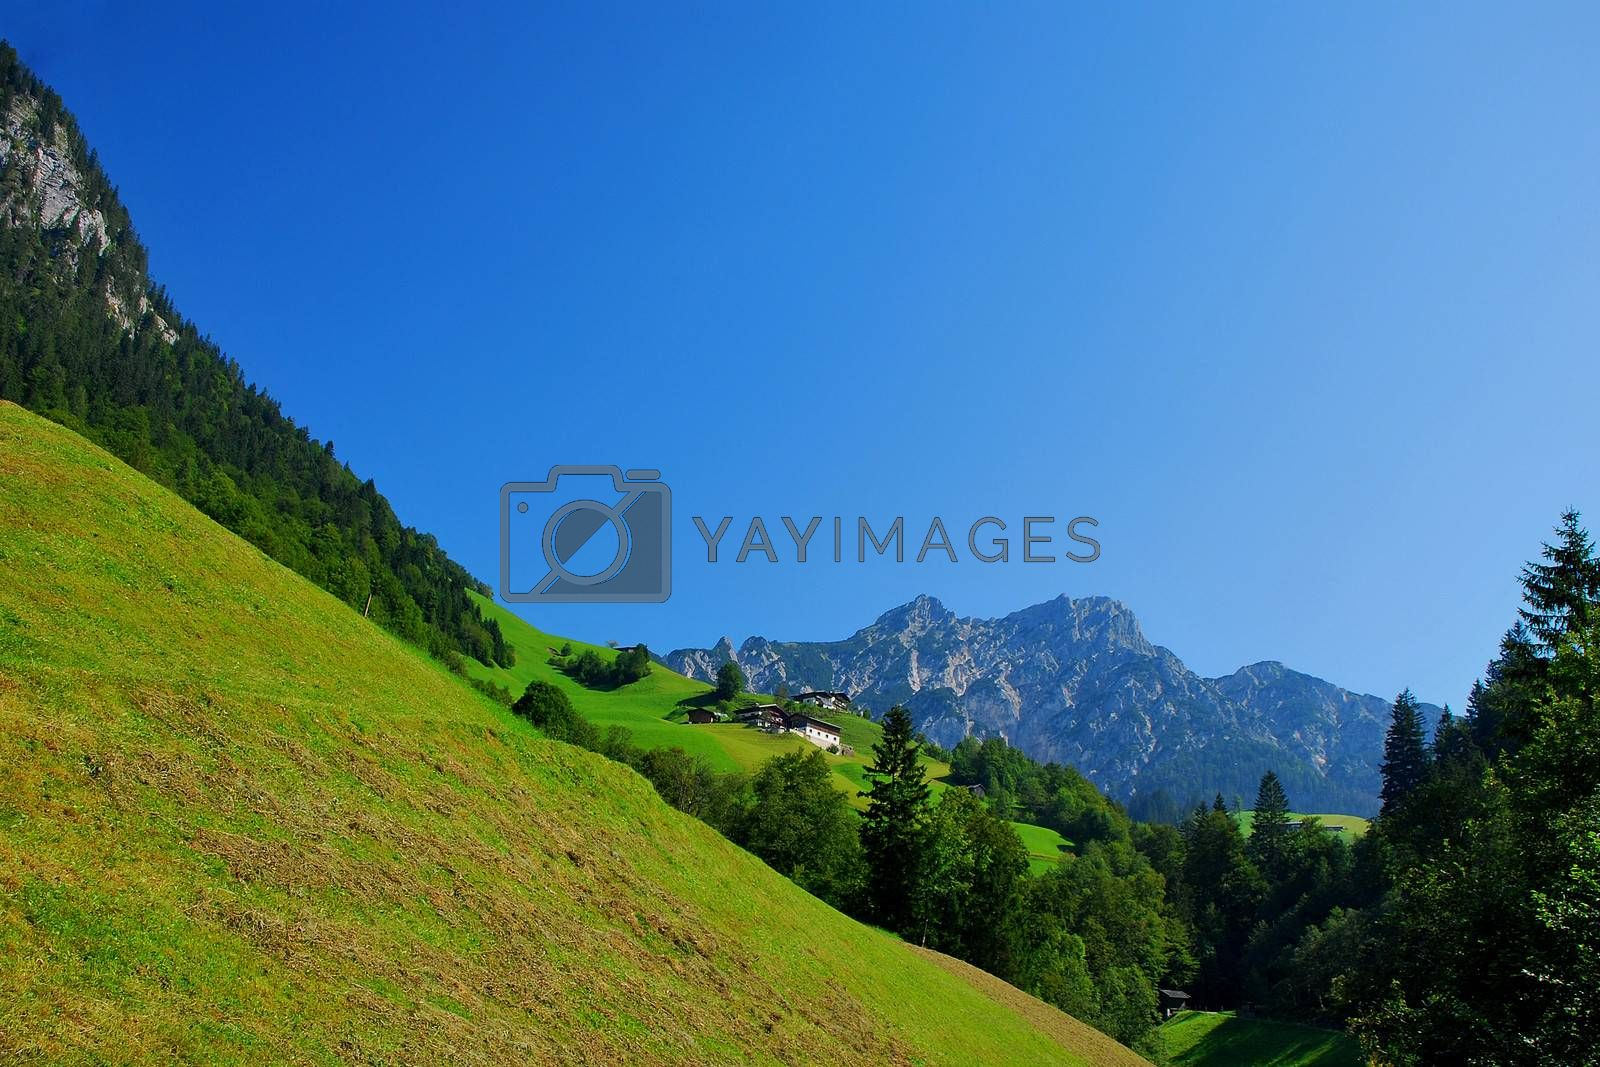 green alpine meadows and trees in a landscape with mountains